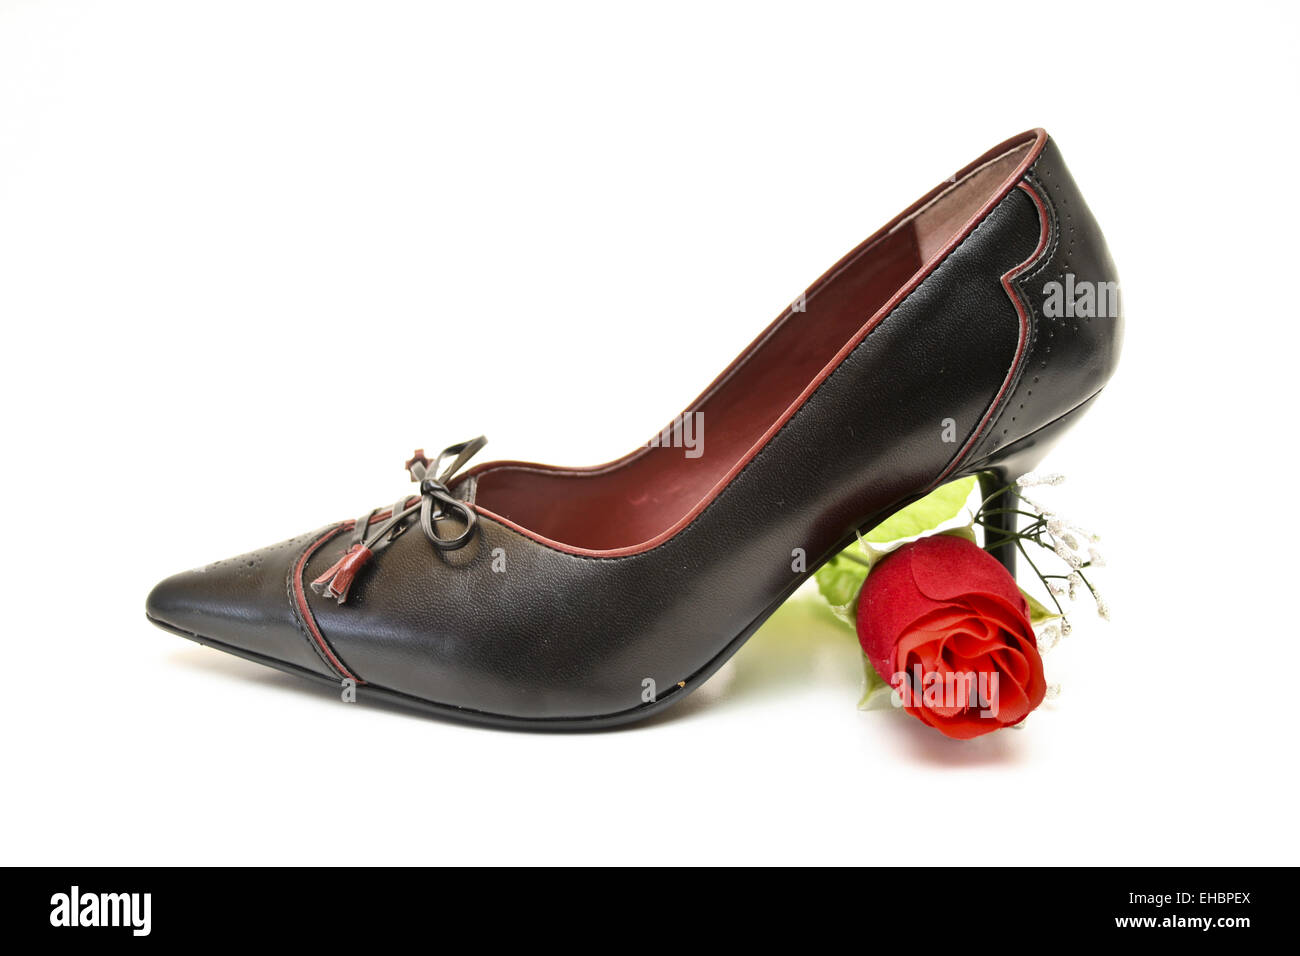 Ladies shoes with rose - Stock Image